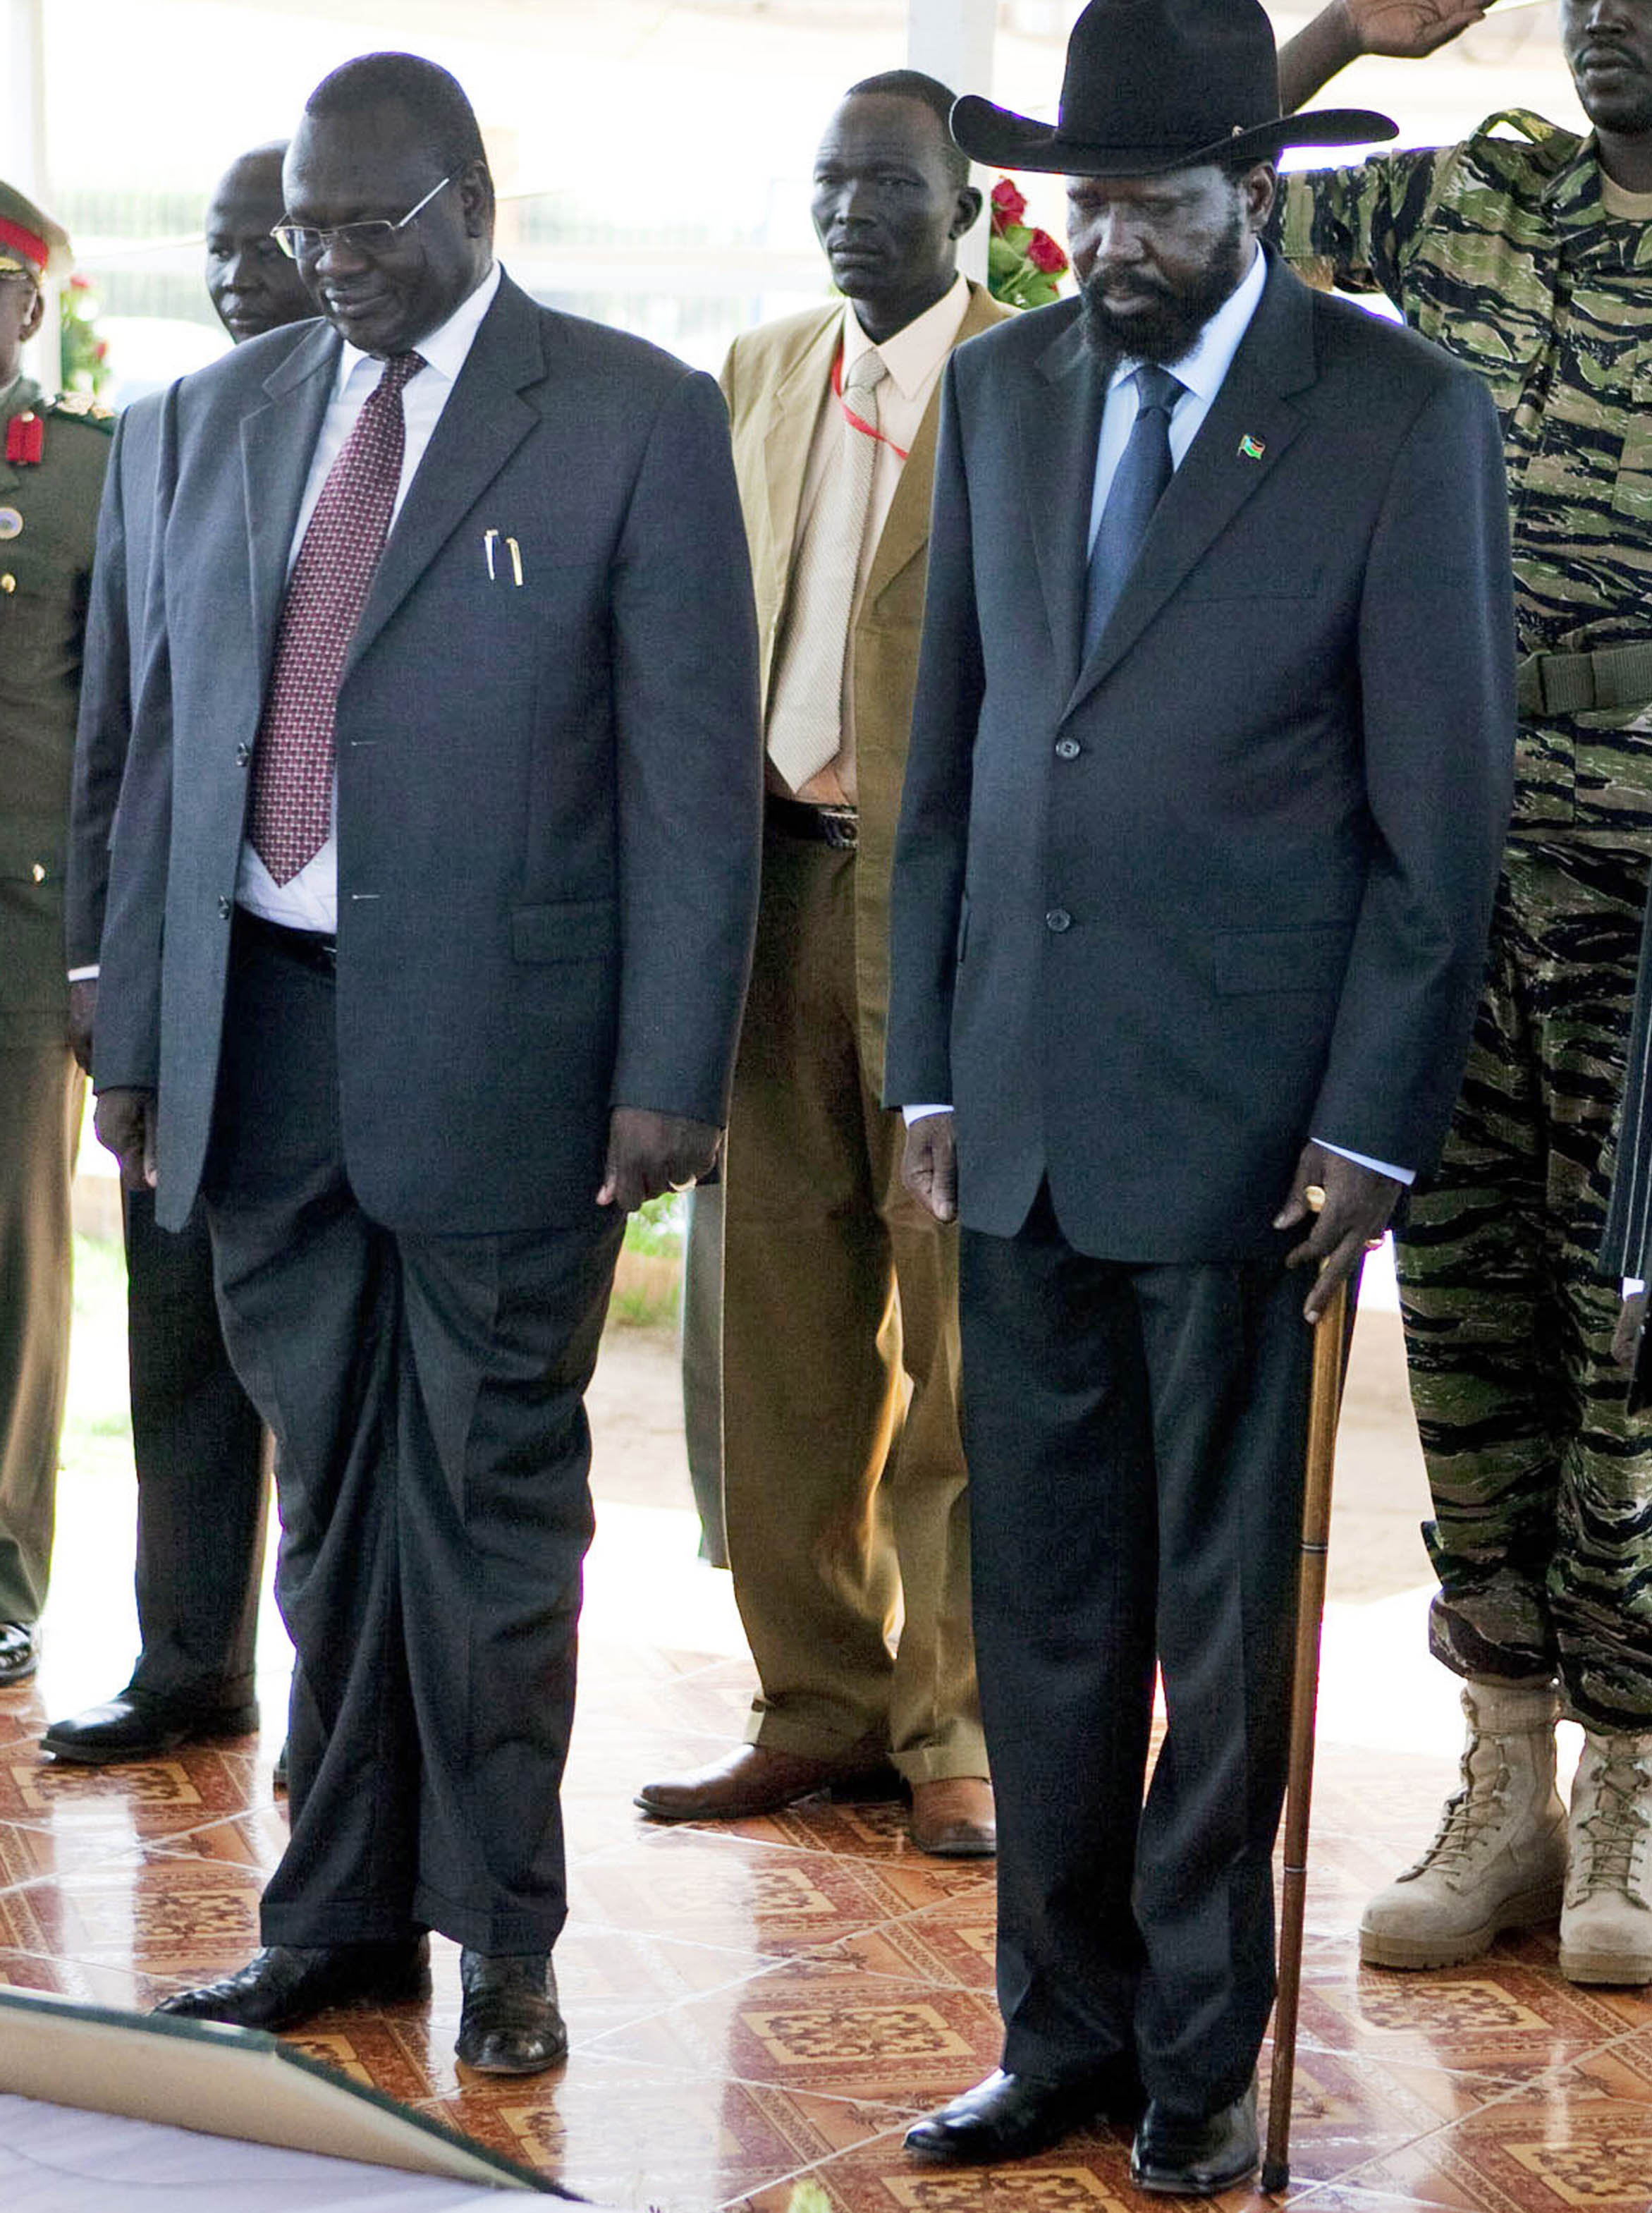 New Report on South Sudan: Spoils of War, Spoilers of Peace